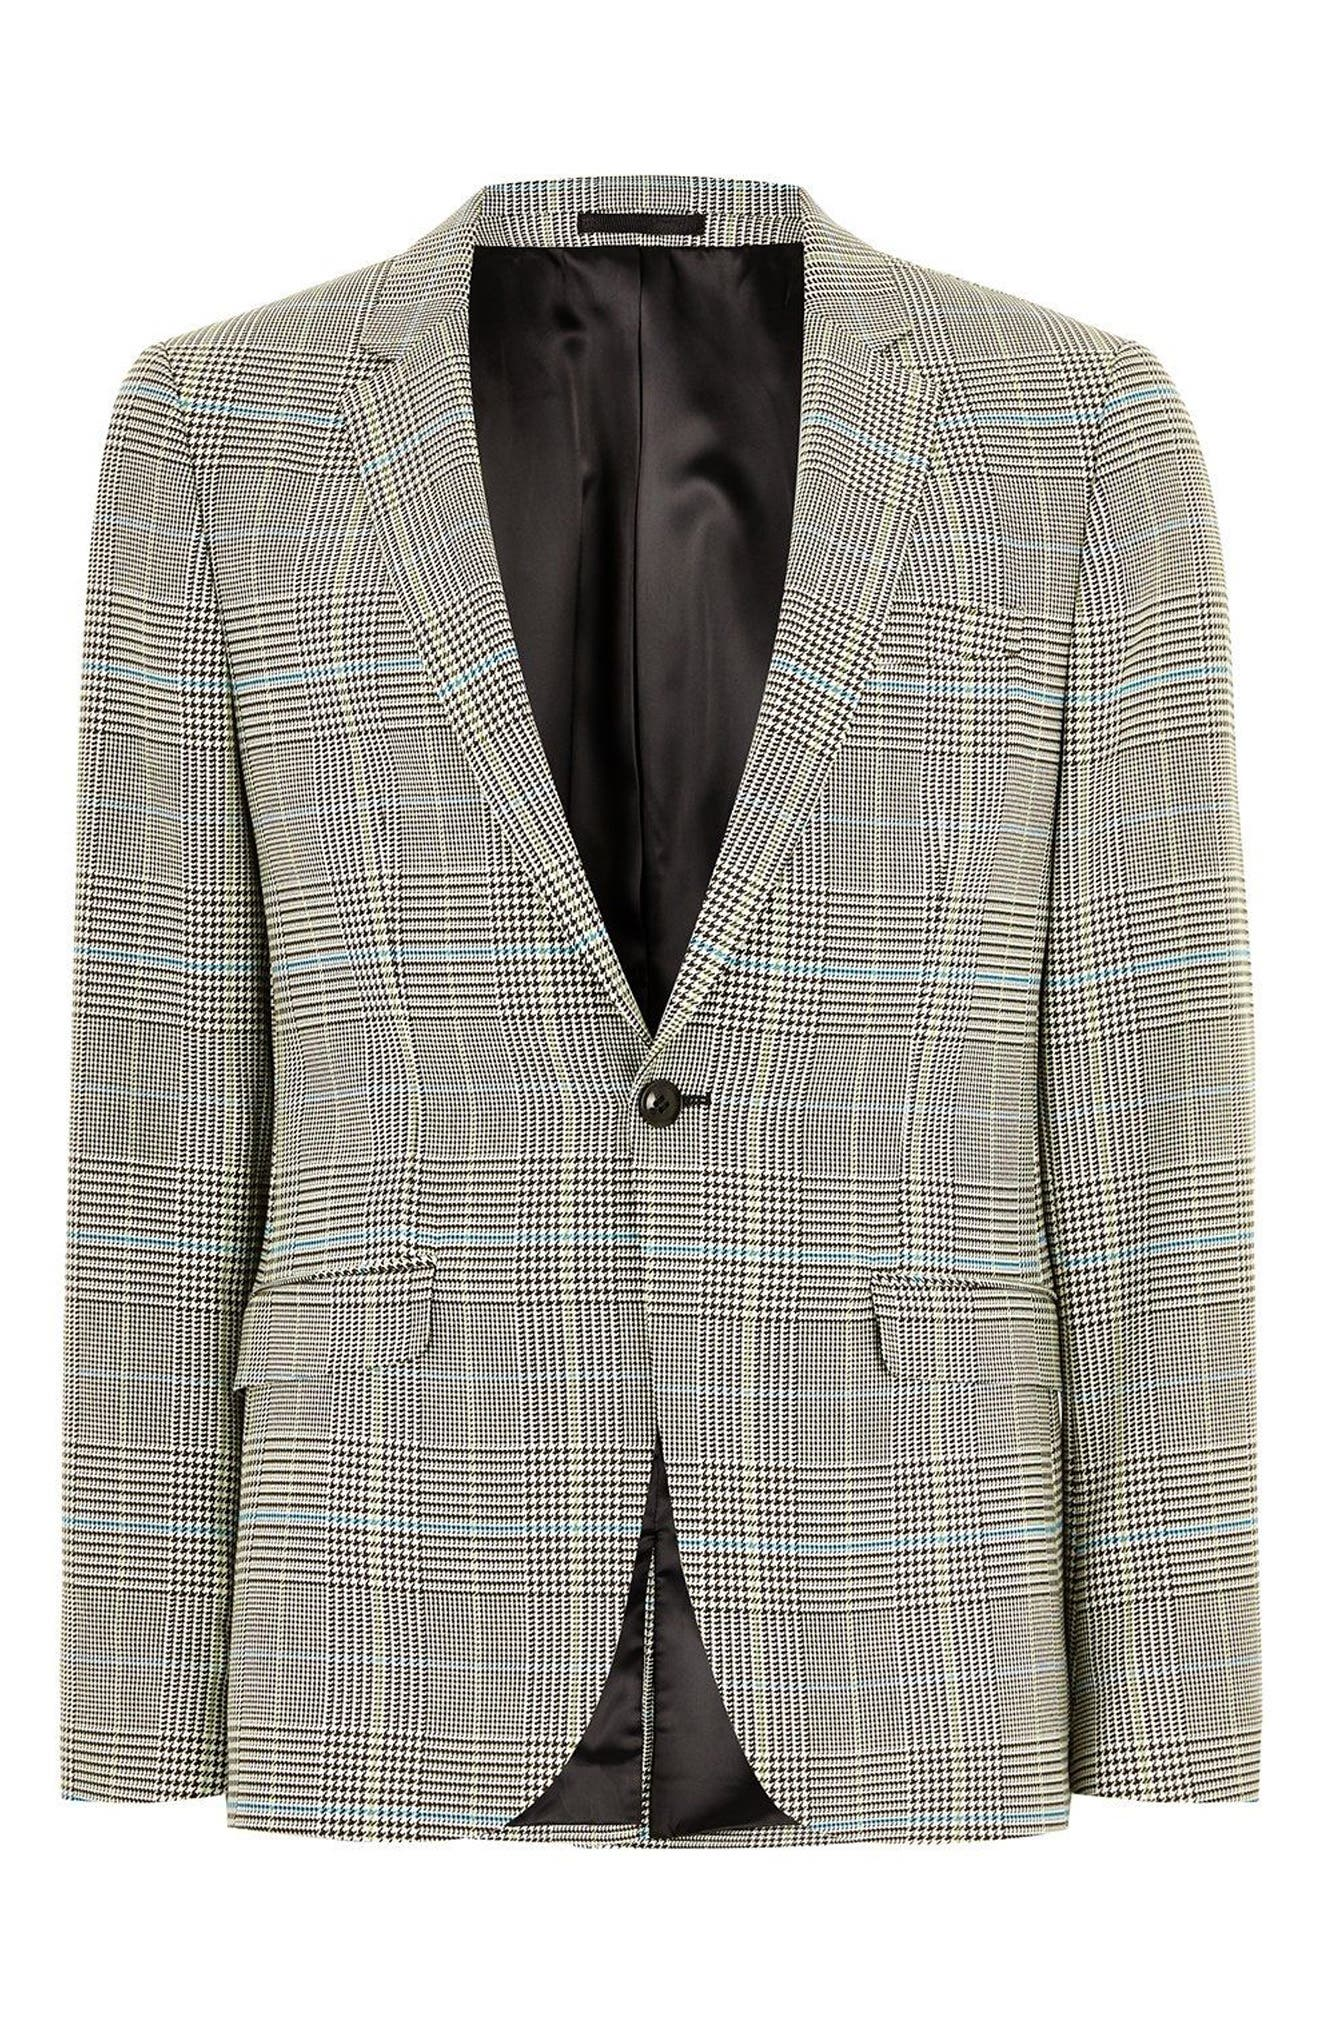 Skinny Fit Houndstooth Suit Jacket,                             Alternate thumbnail 4, color,                             GREY MULTI